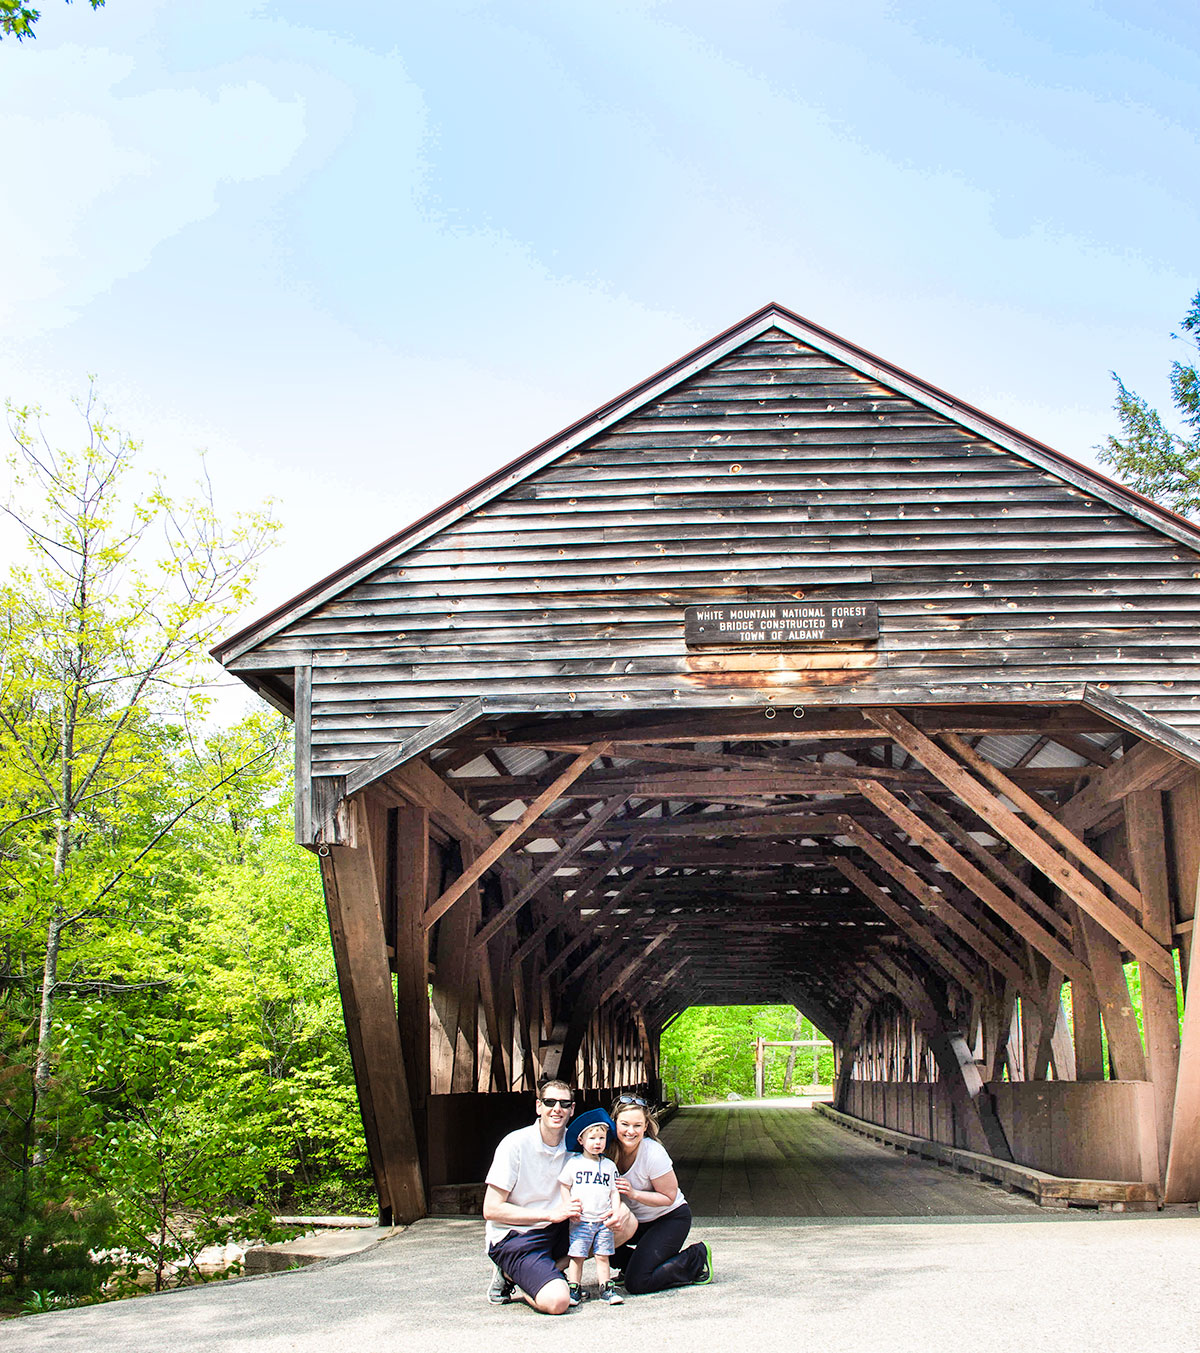 Albany-Covered-Bridge-Kancamagus-Highway-White-Mountains